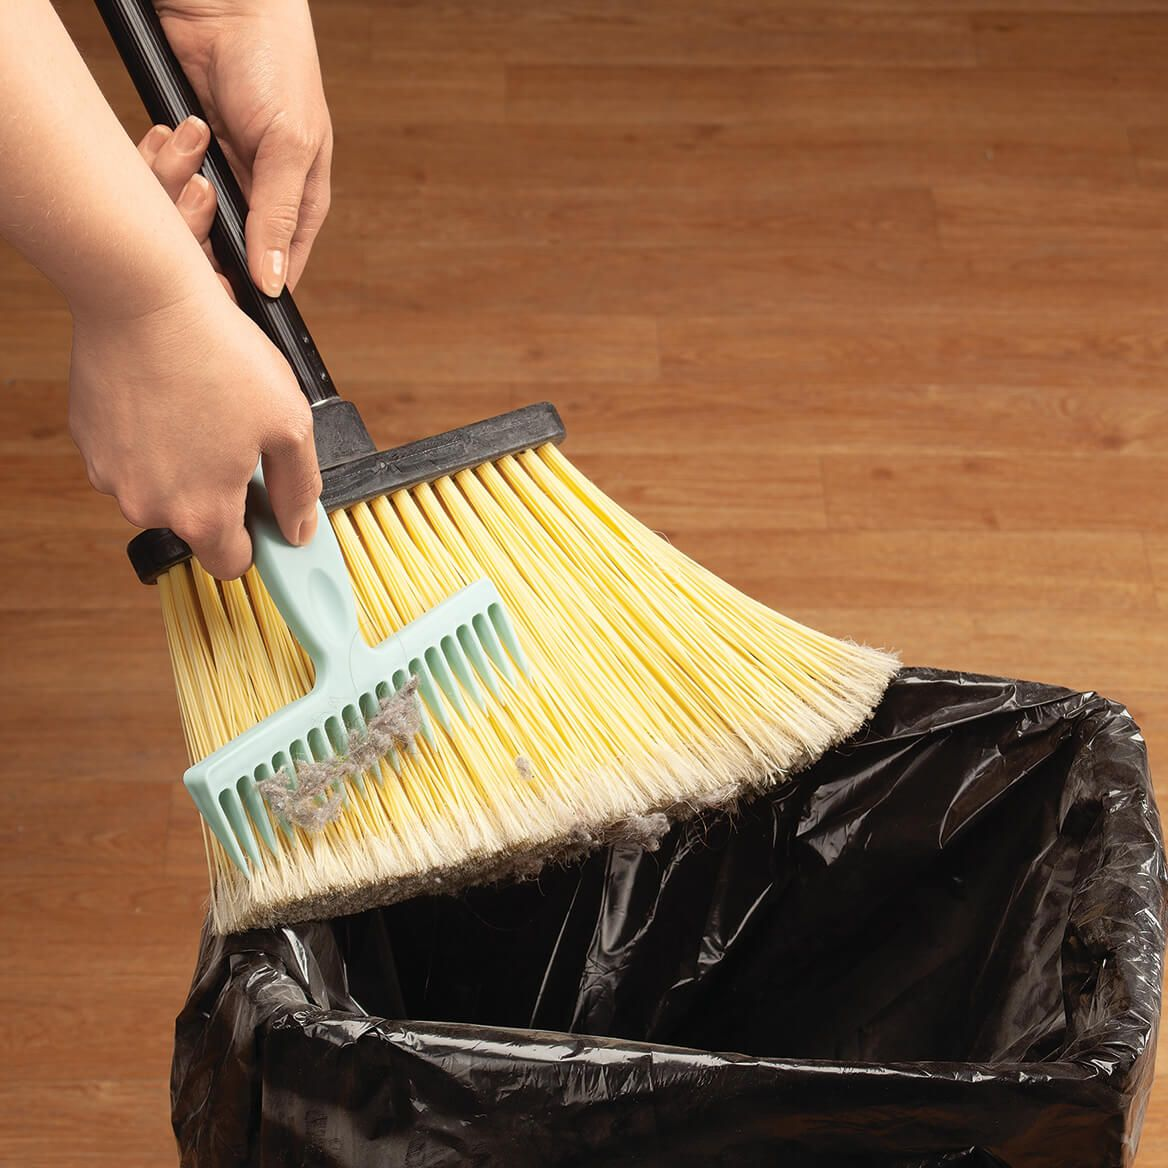 Broom Cleaning Comb-370330